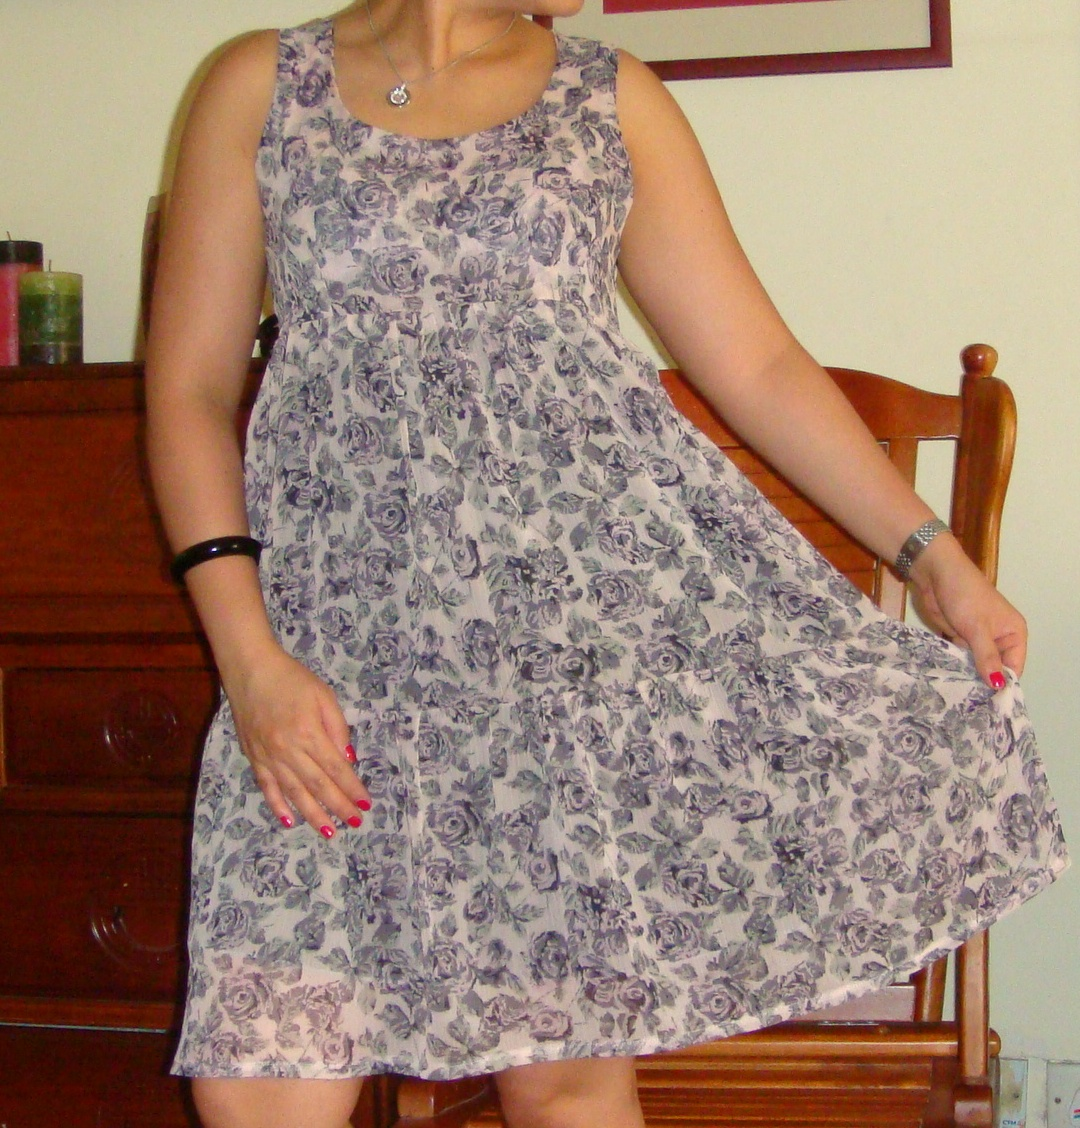 http://velvetribbonsew.blogspot.com/2011/11/cinnamon-dress.html